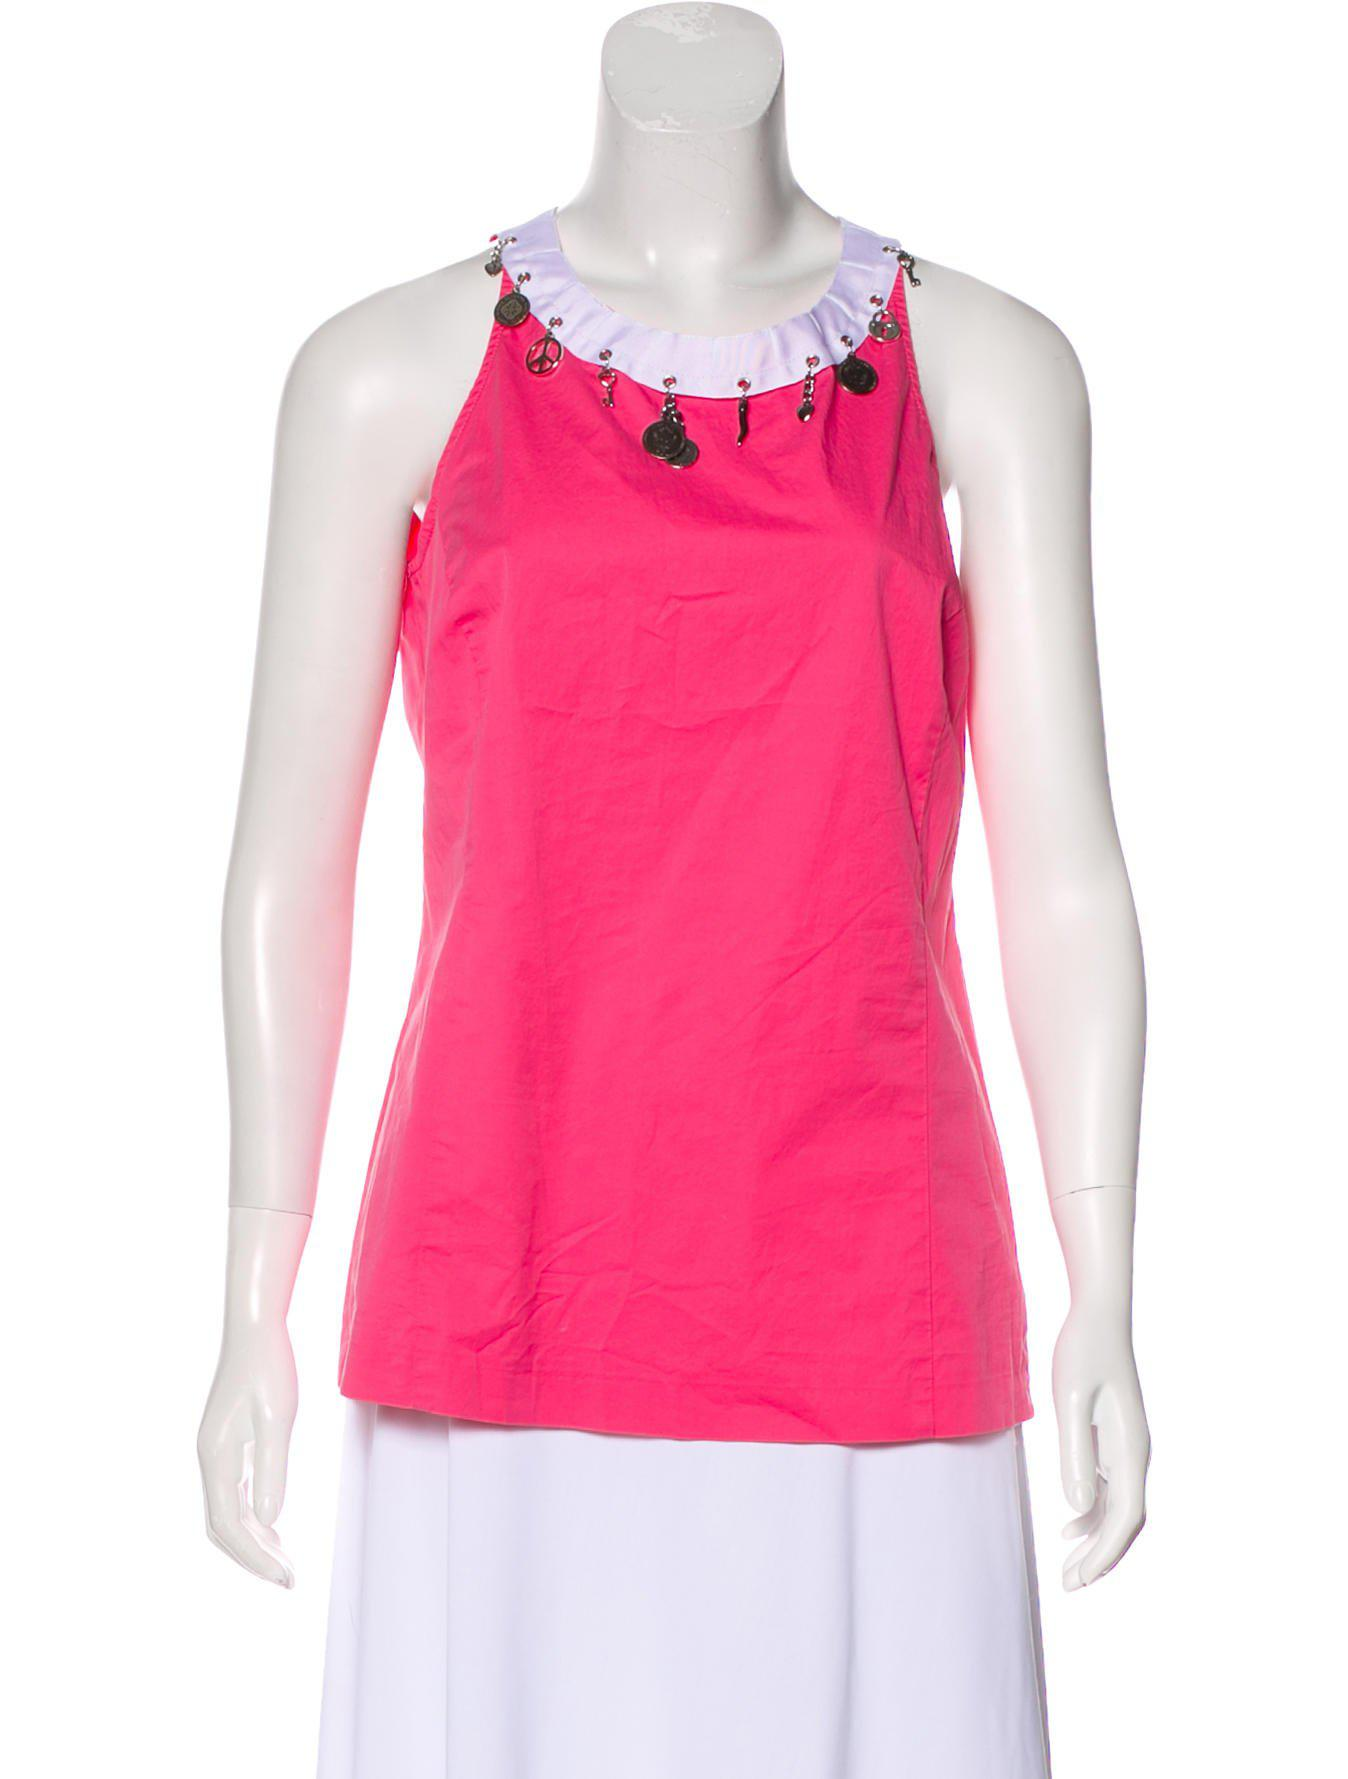 Love Moschino Embellished Sleeveless Top Clearance Discount Free Shipping Real Discount Clearance Store Low Cost Online ZvZs9oN